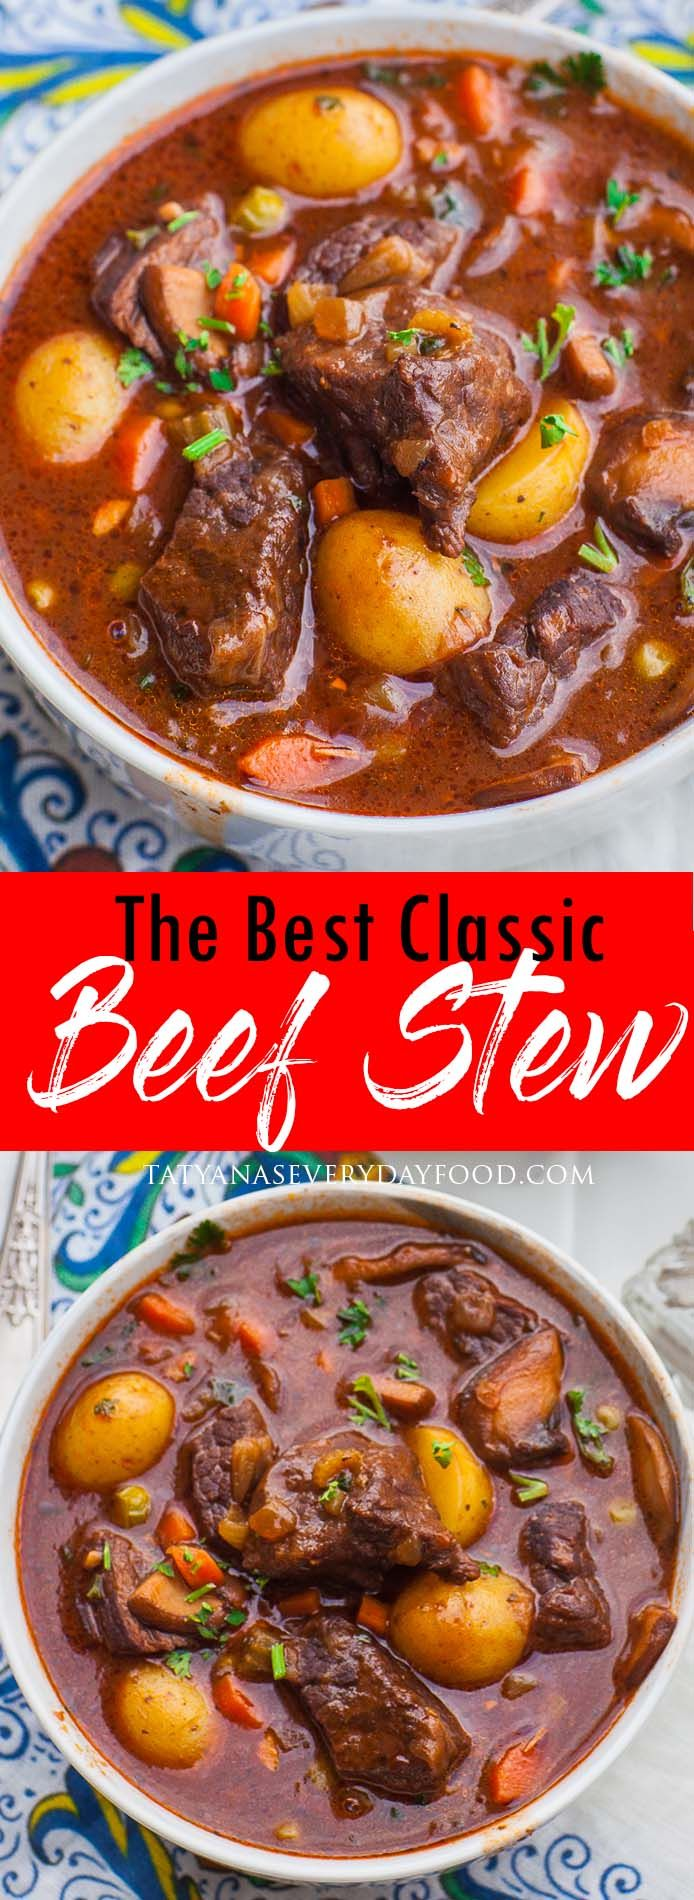 The Best Ever Beef Stew Video Tatyanas Everyday Food Recipe In 2020 Tatyana S Everyday Food Beef Stew Recipe Best Beef Stew Recipe